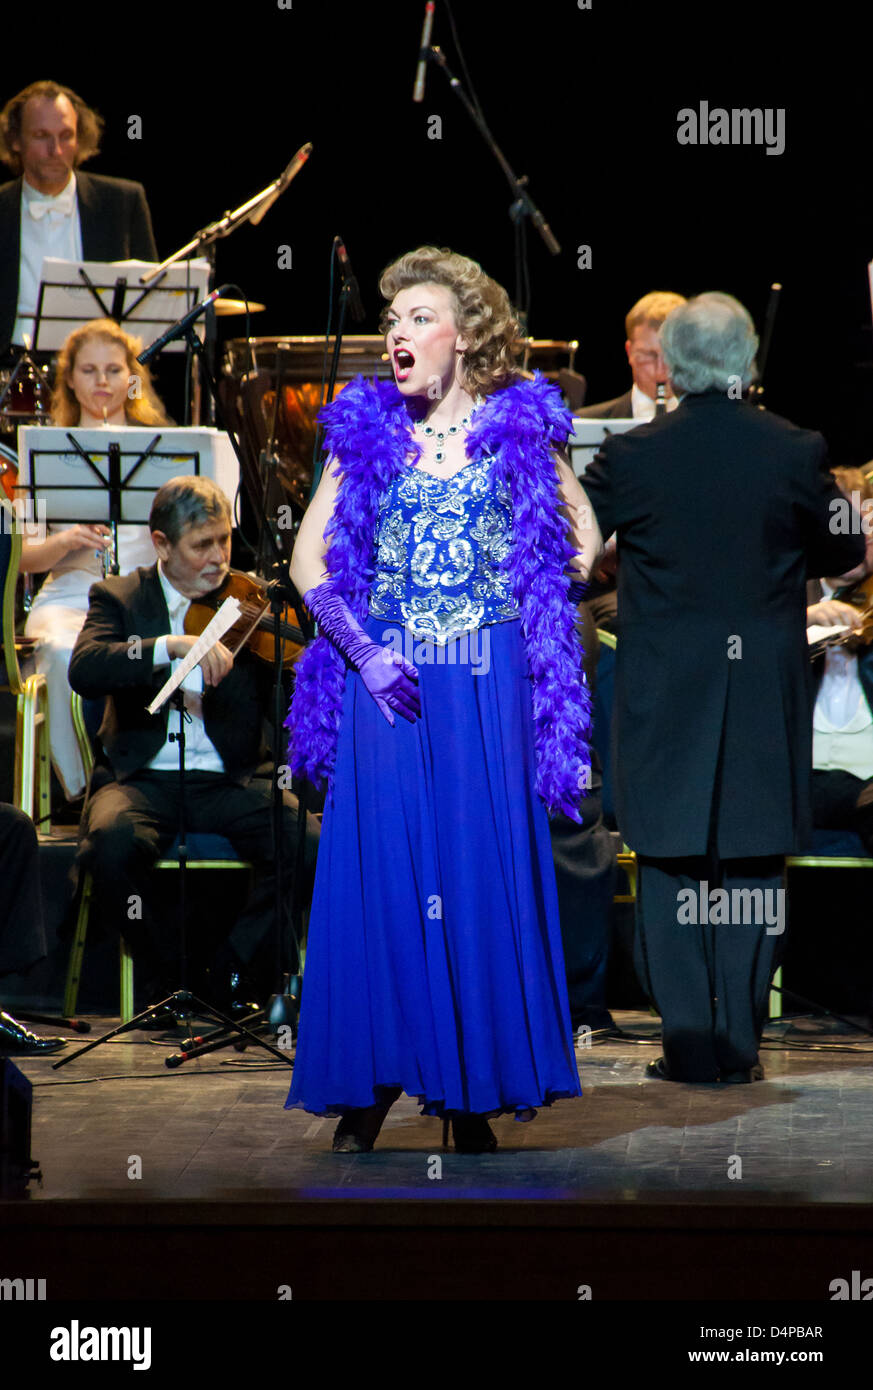 Singer Monica Mosser, conductor Peter Guth and Strauss Festival Orchestra Vienna in concert Crocus City Hall. Moscow - Stock Image